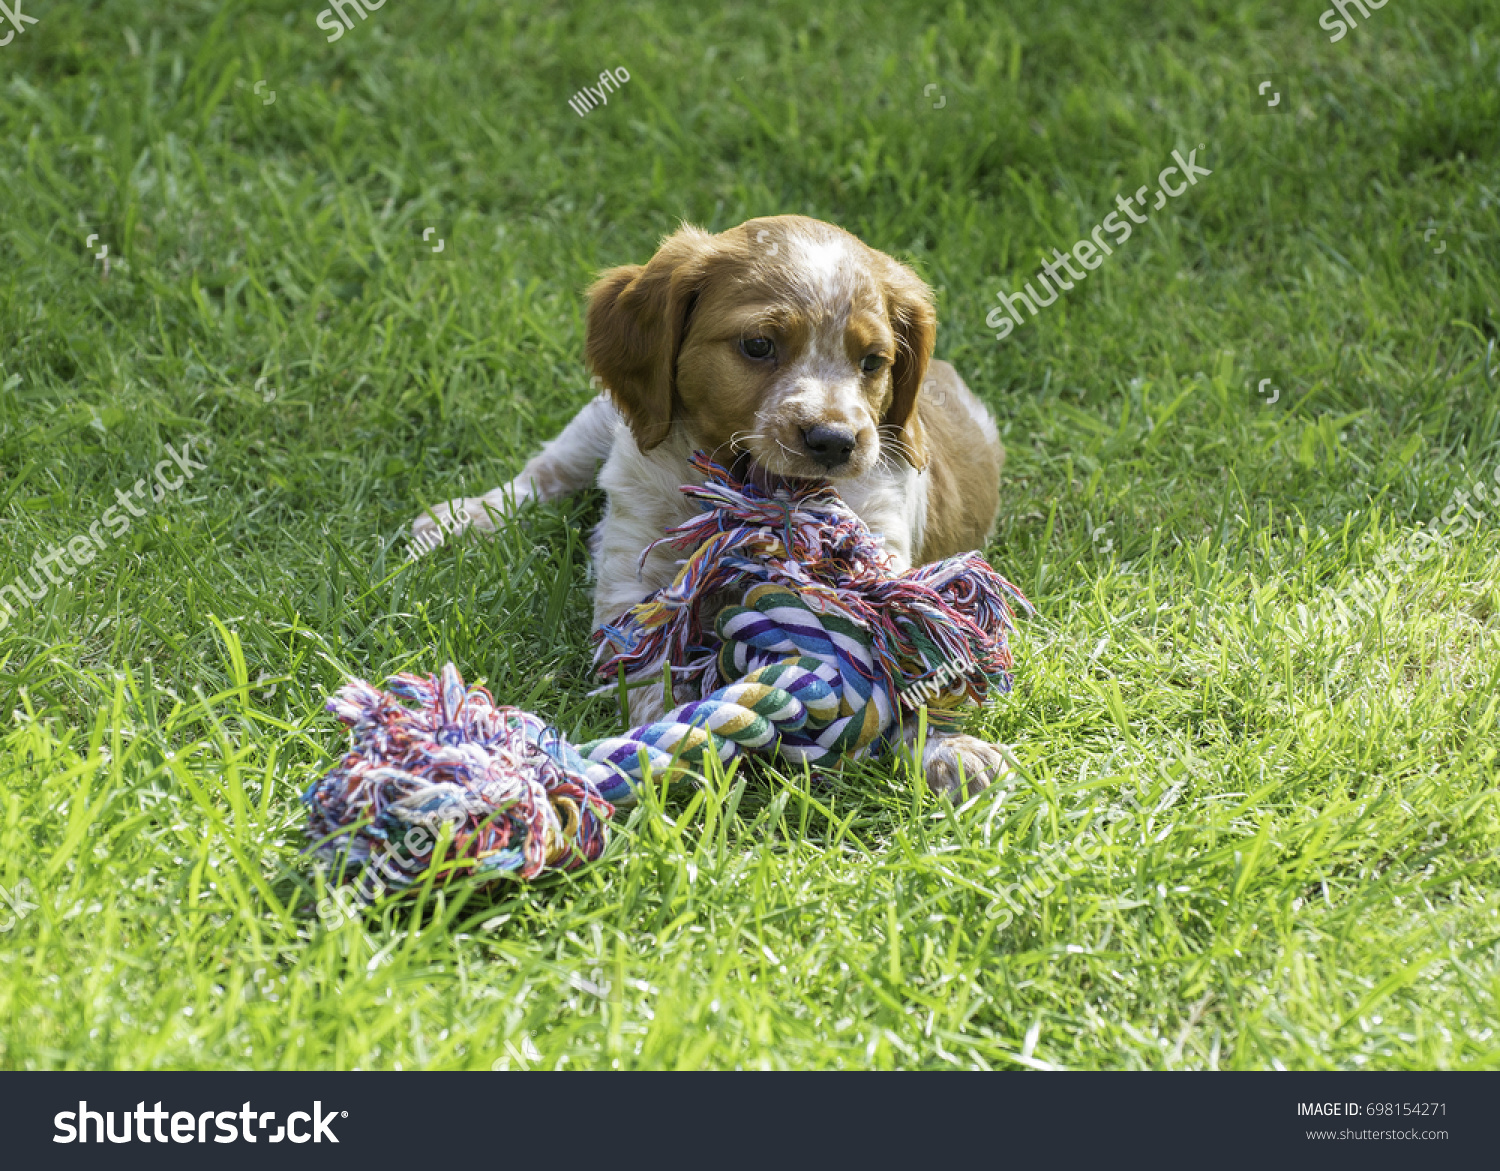 French Brittany Spaniel Puppy Rope Toy Stock Photo Edit Now 698154271